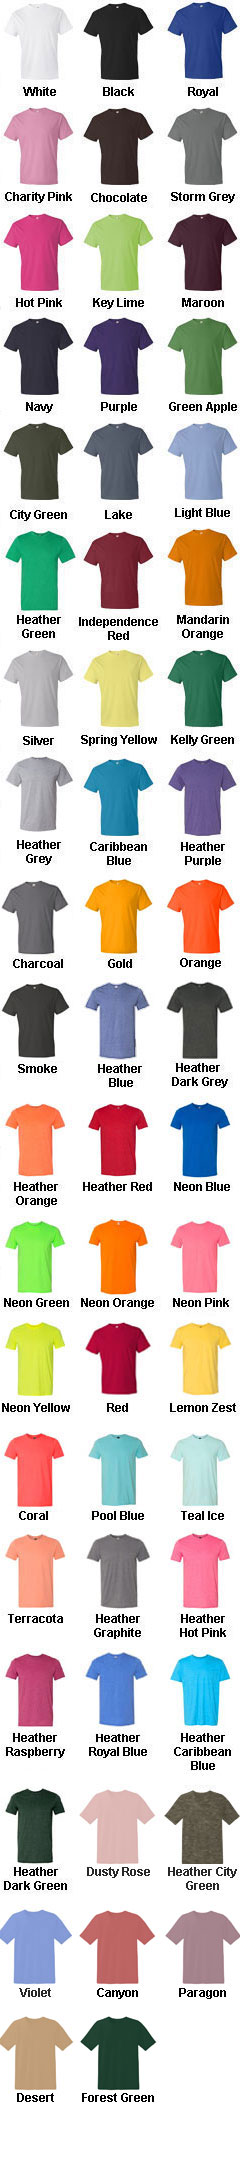 Anvil Mens 100% Ringspun Cotton Fashion Fit Tee - All Colors